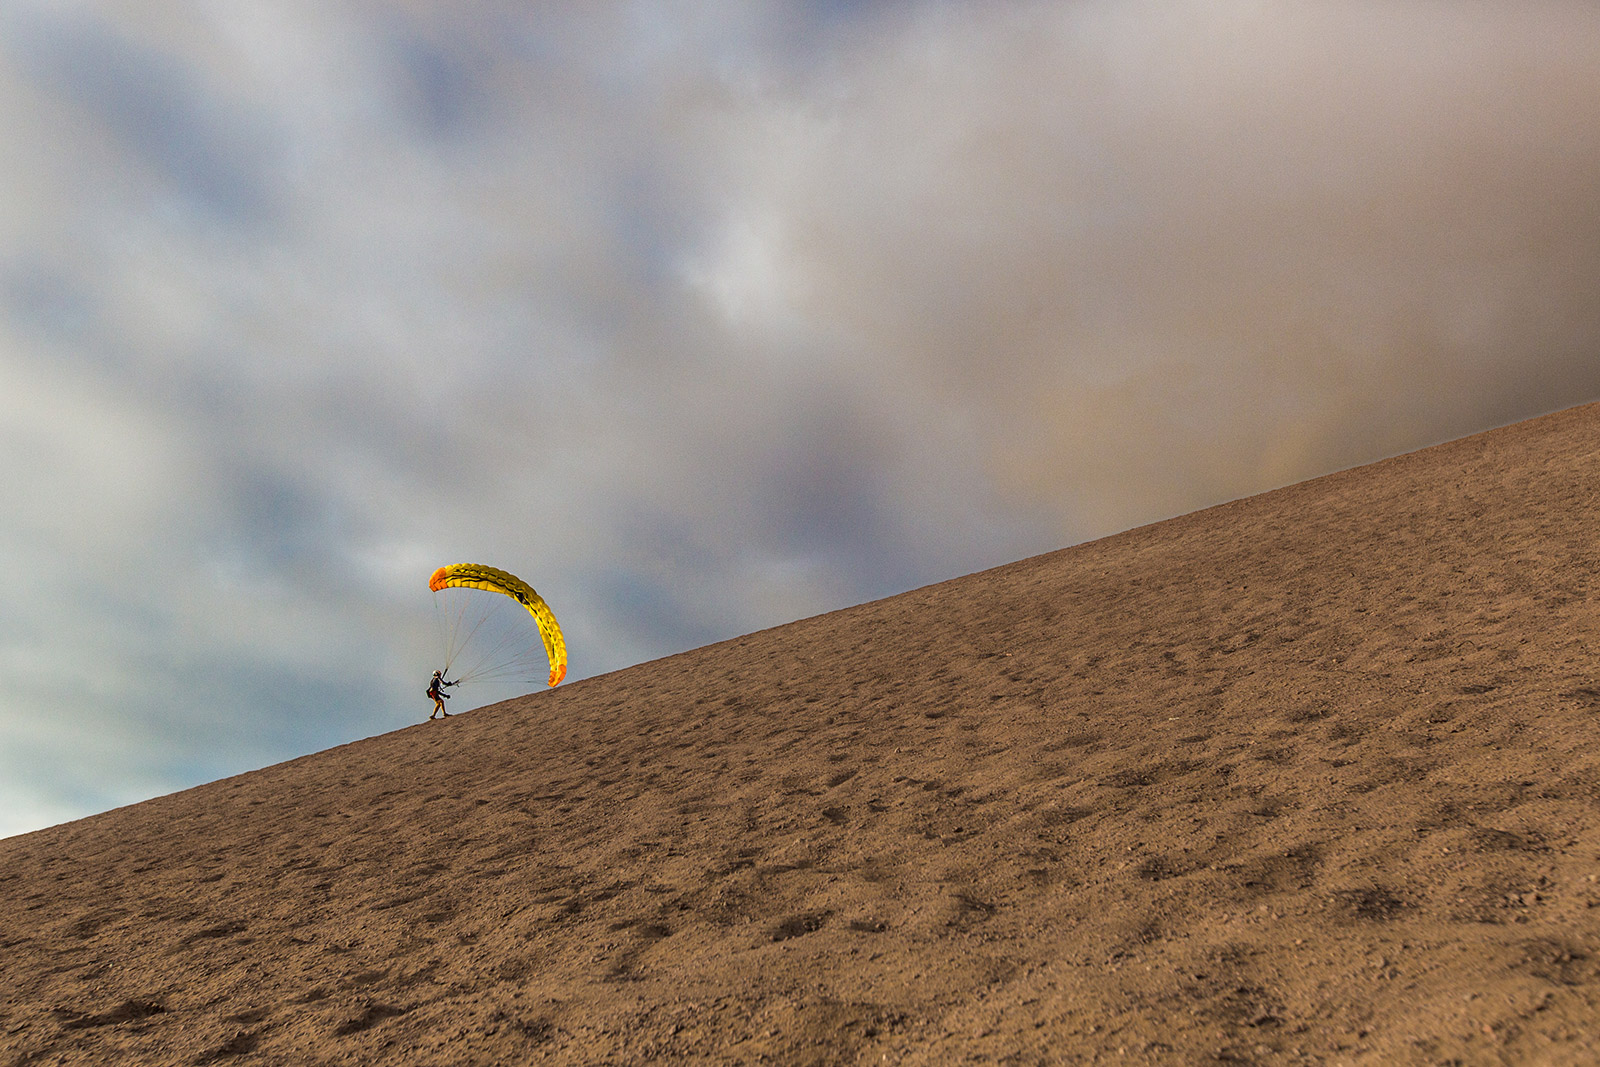 Chris working his way up the dune for a sunset swoop.